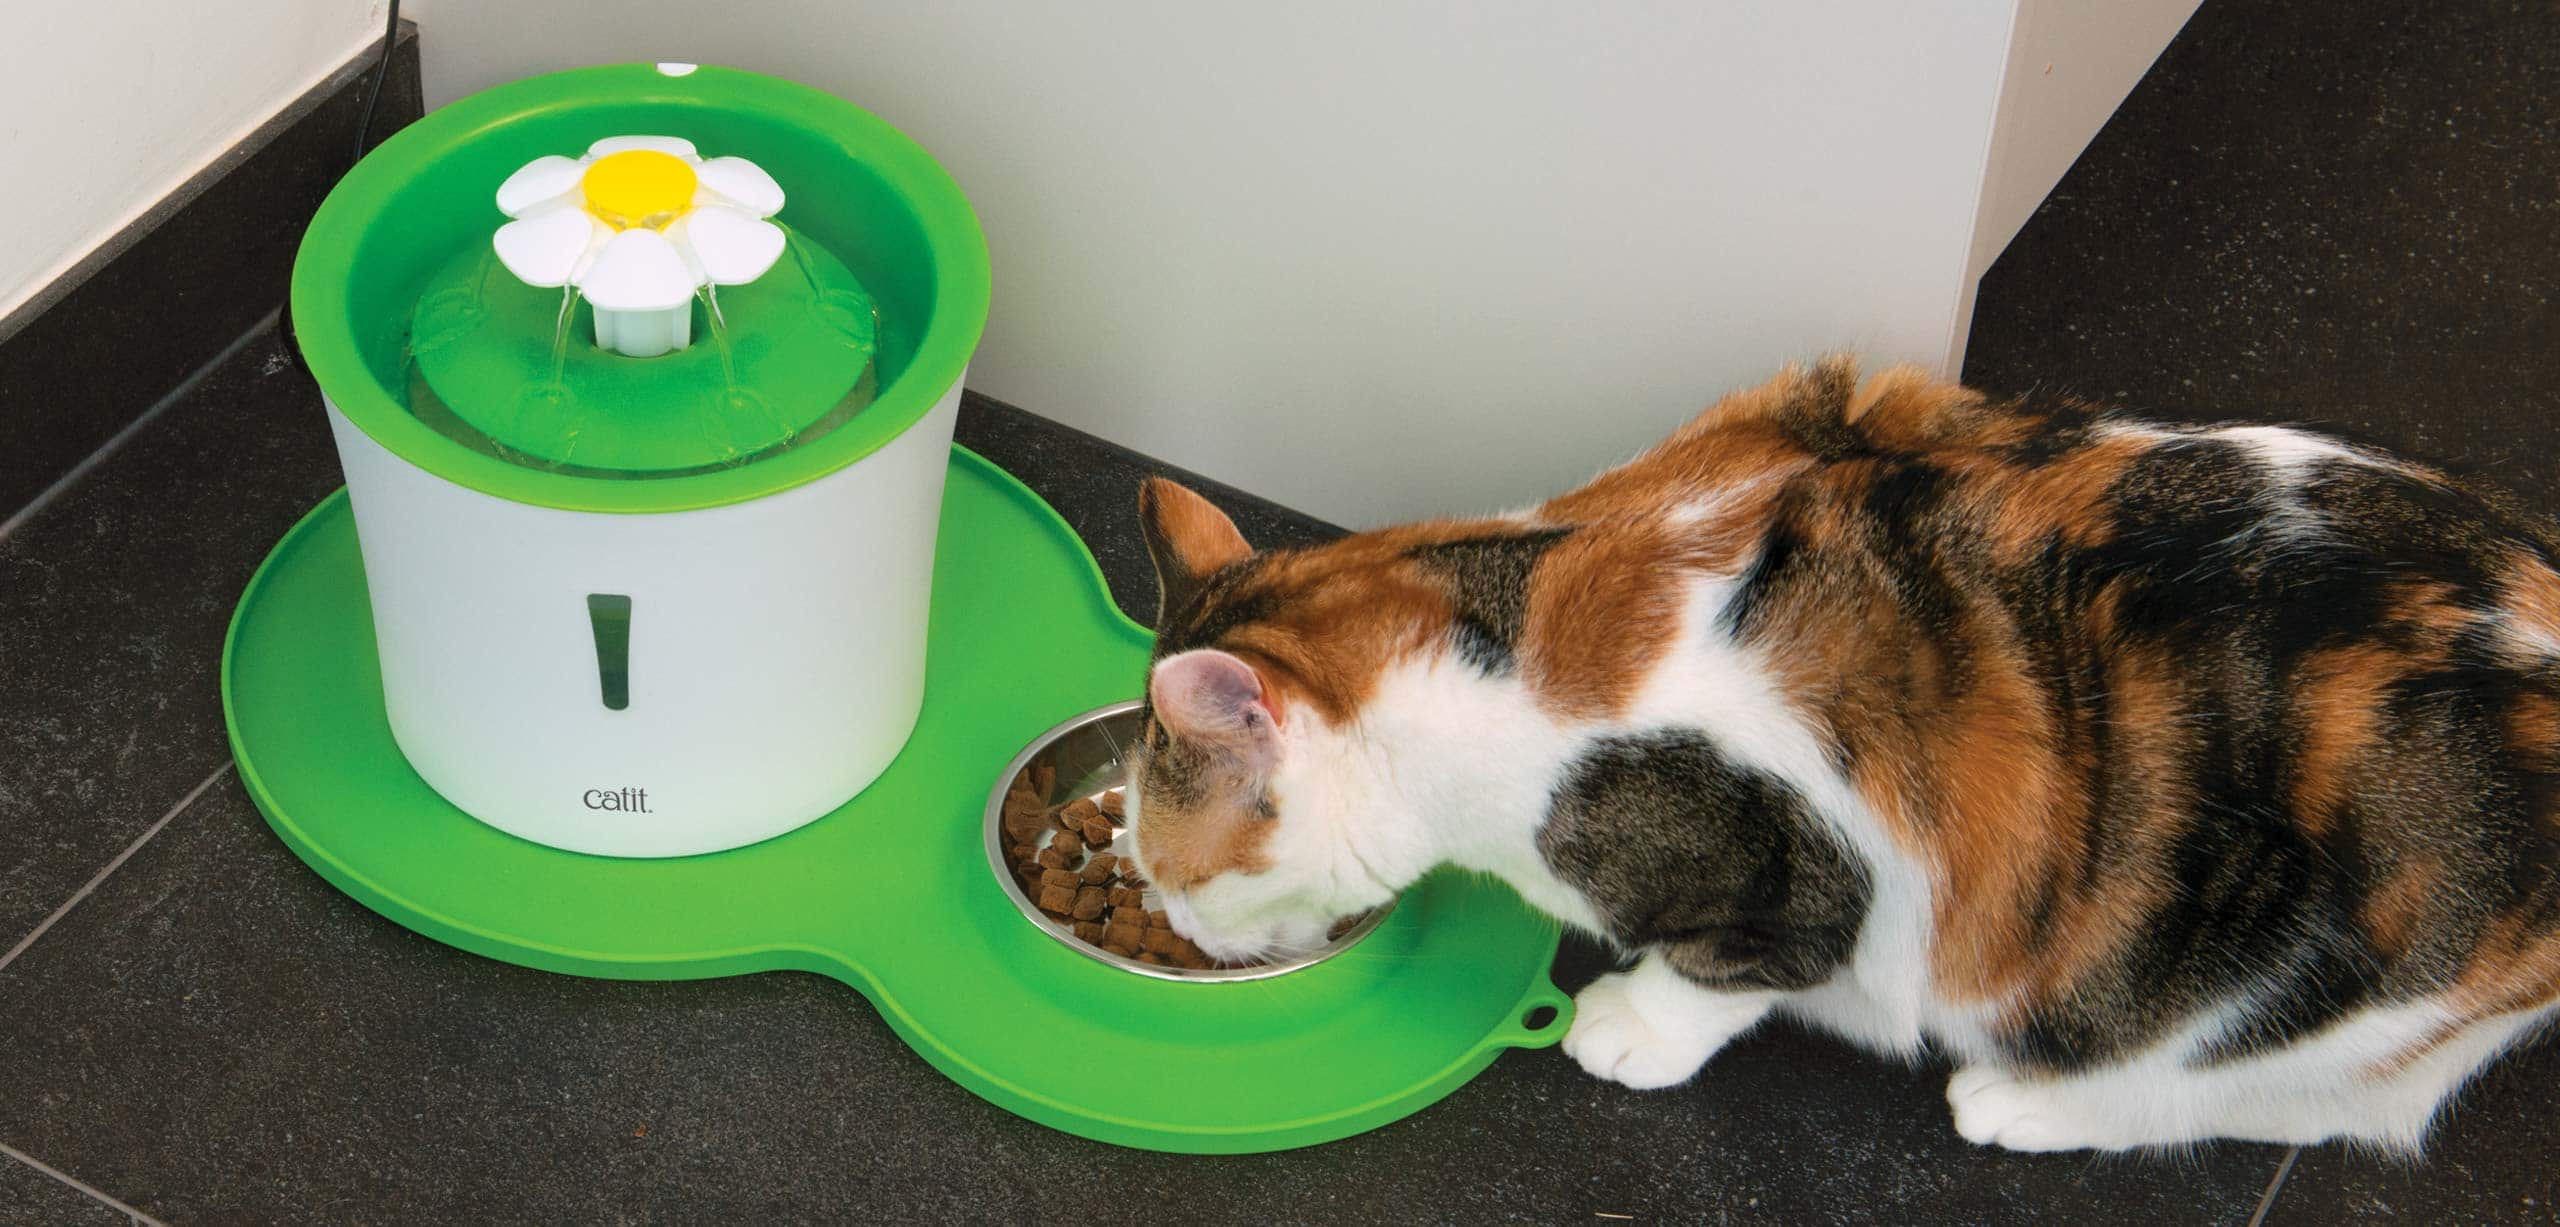 pixi eating from a peanut placemat with a flower fountain